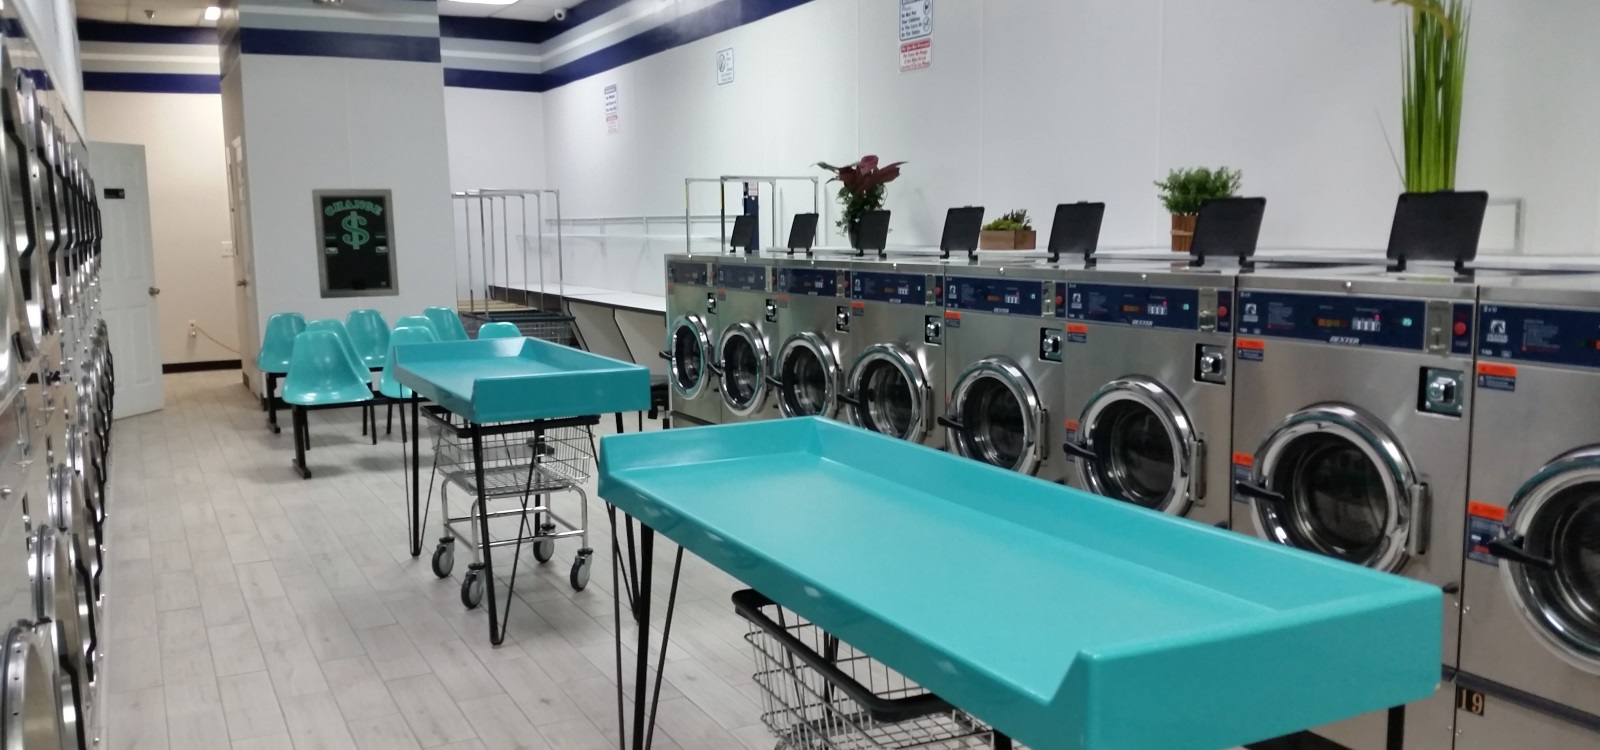 The Laundry Room Wheelchairs